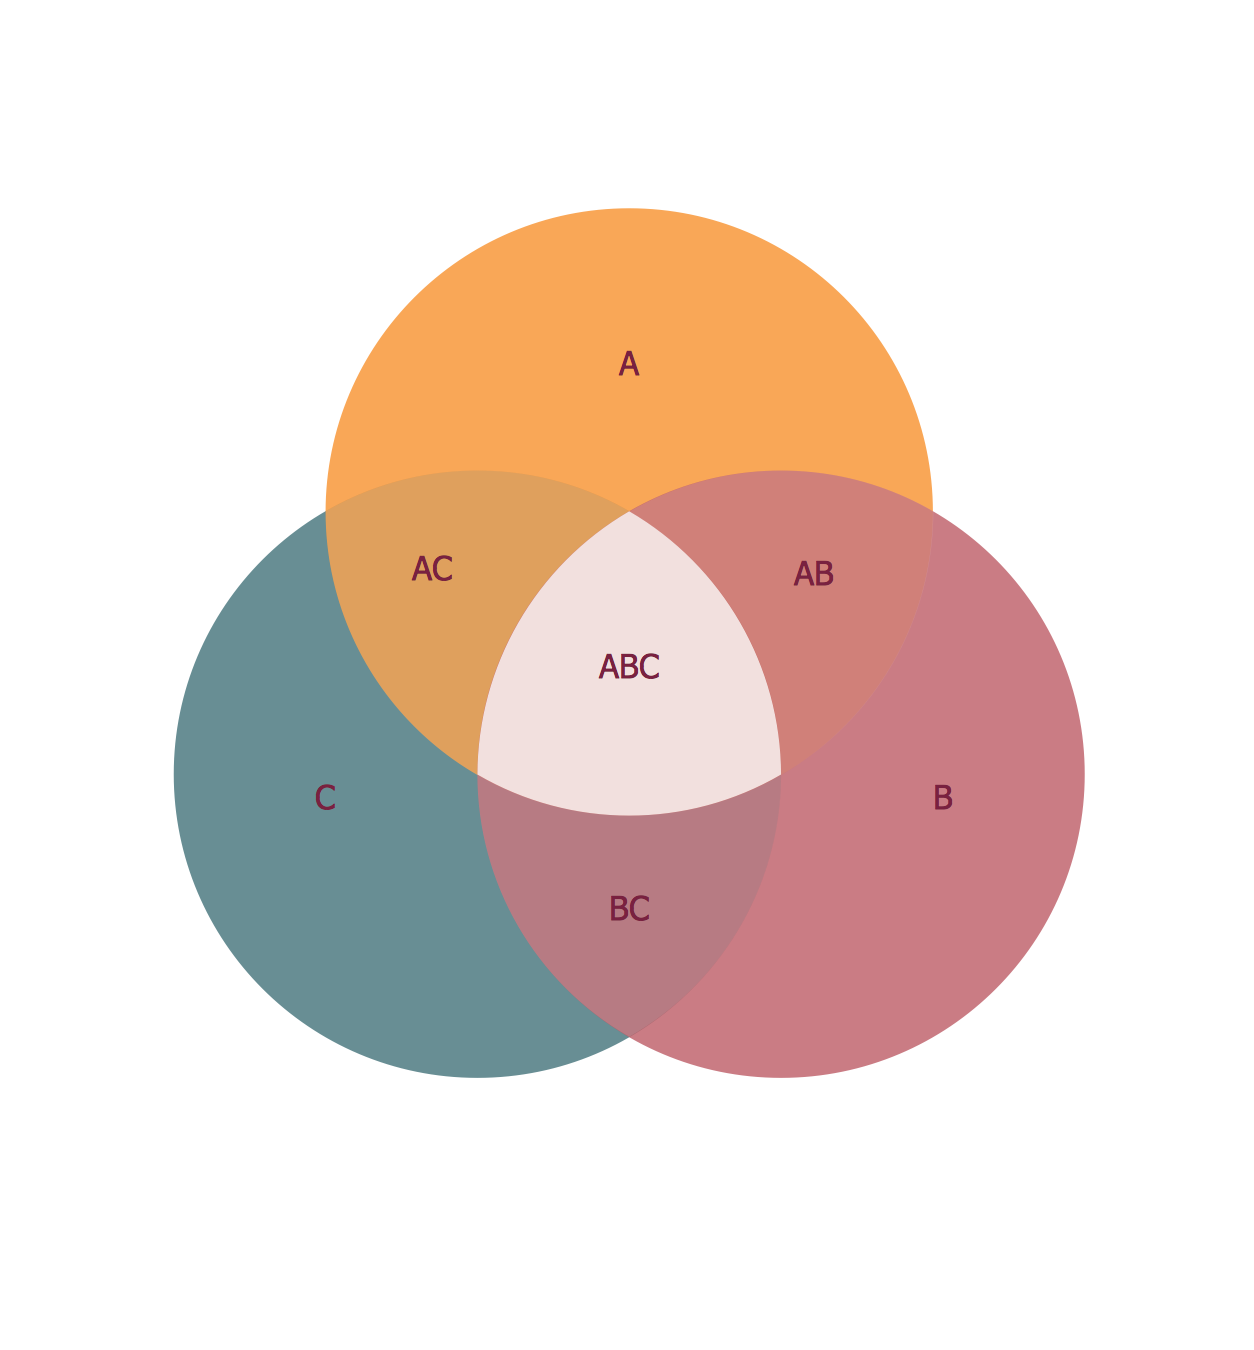 venn diagram examples for logic problem solving  venn diagram as a    venn diagram example   circle venn